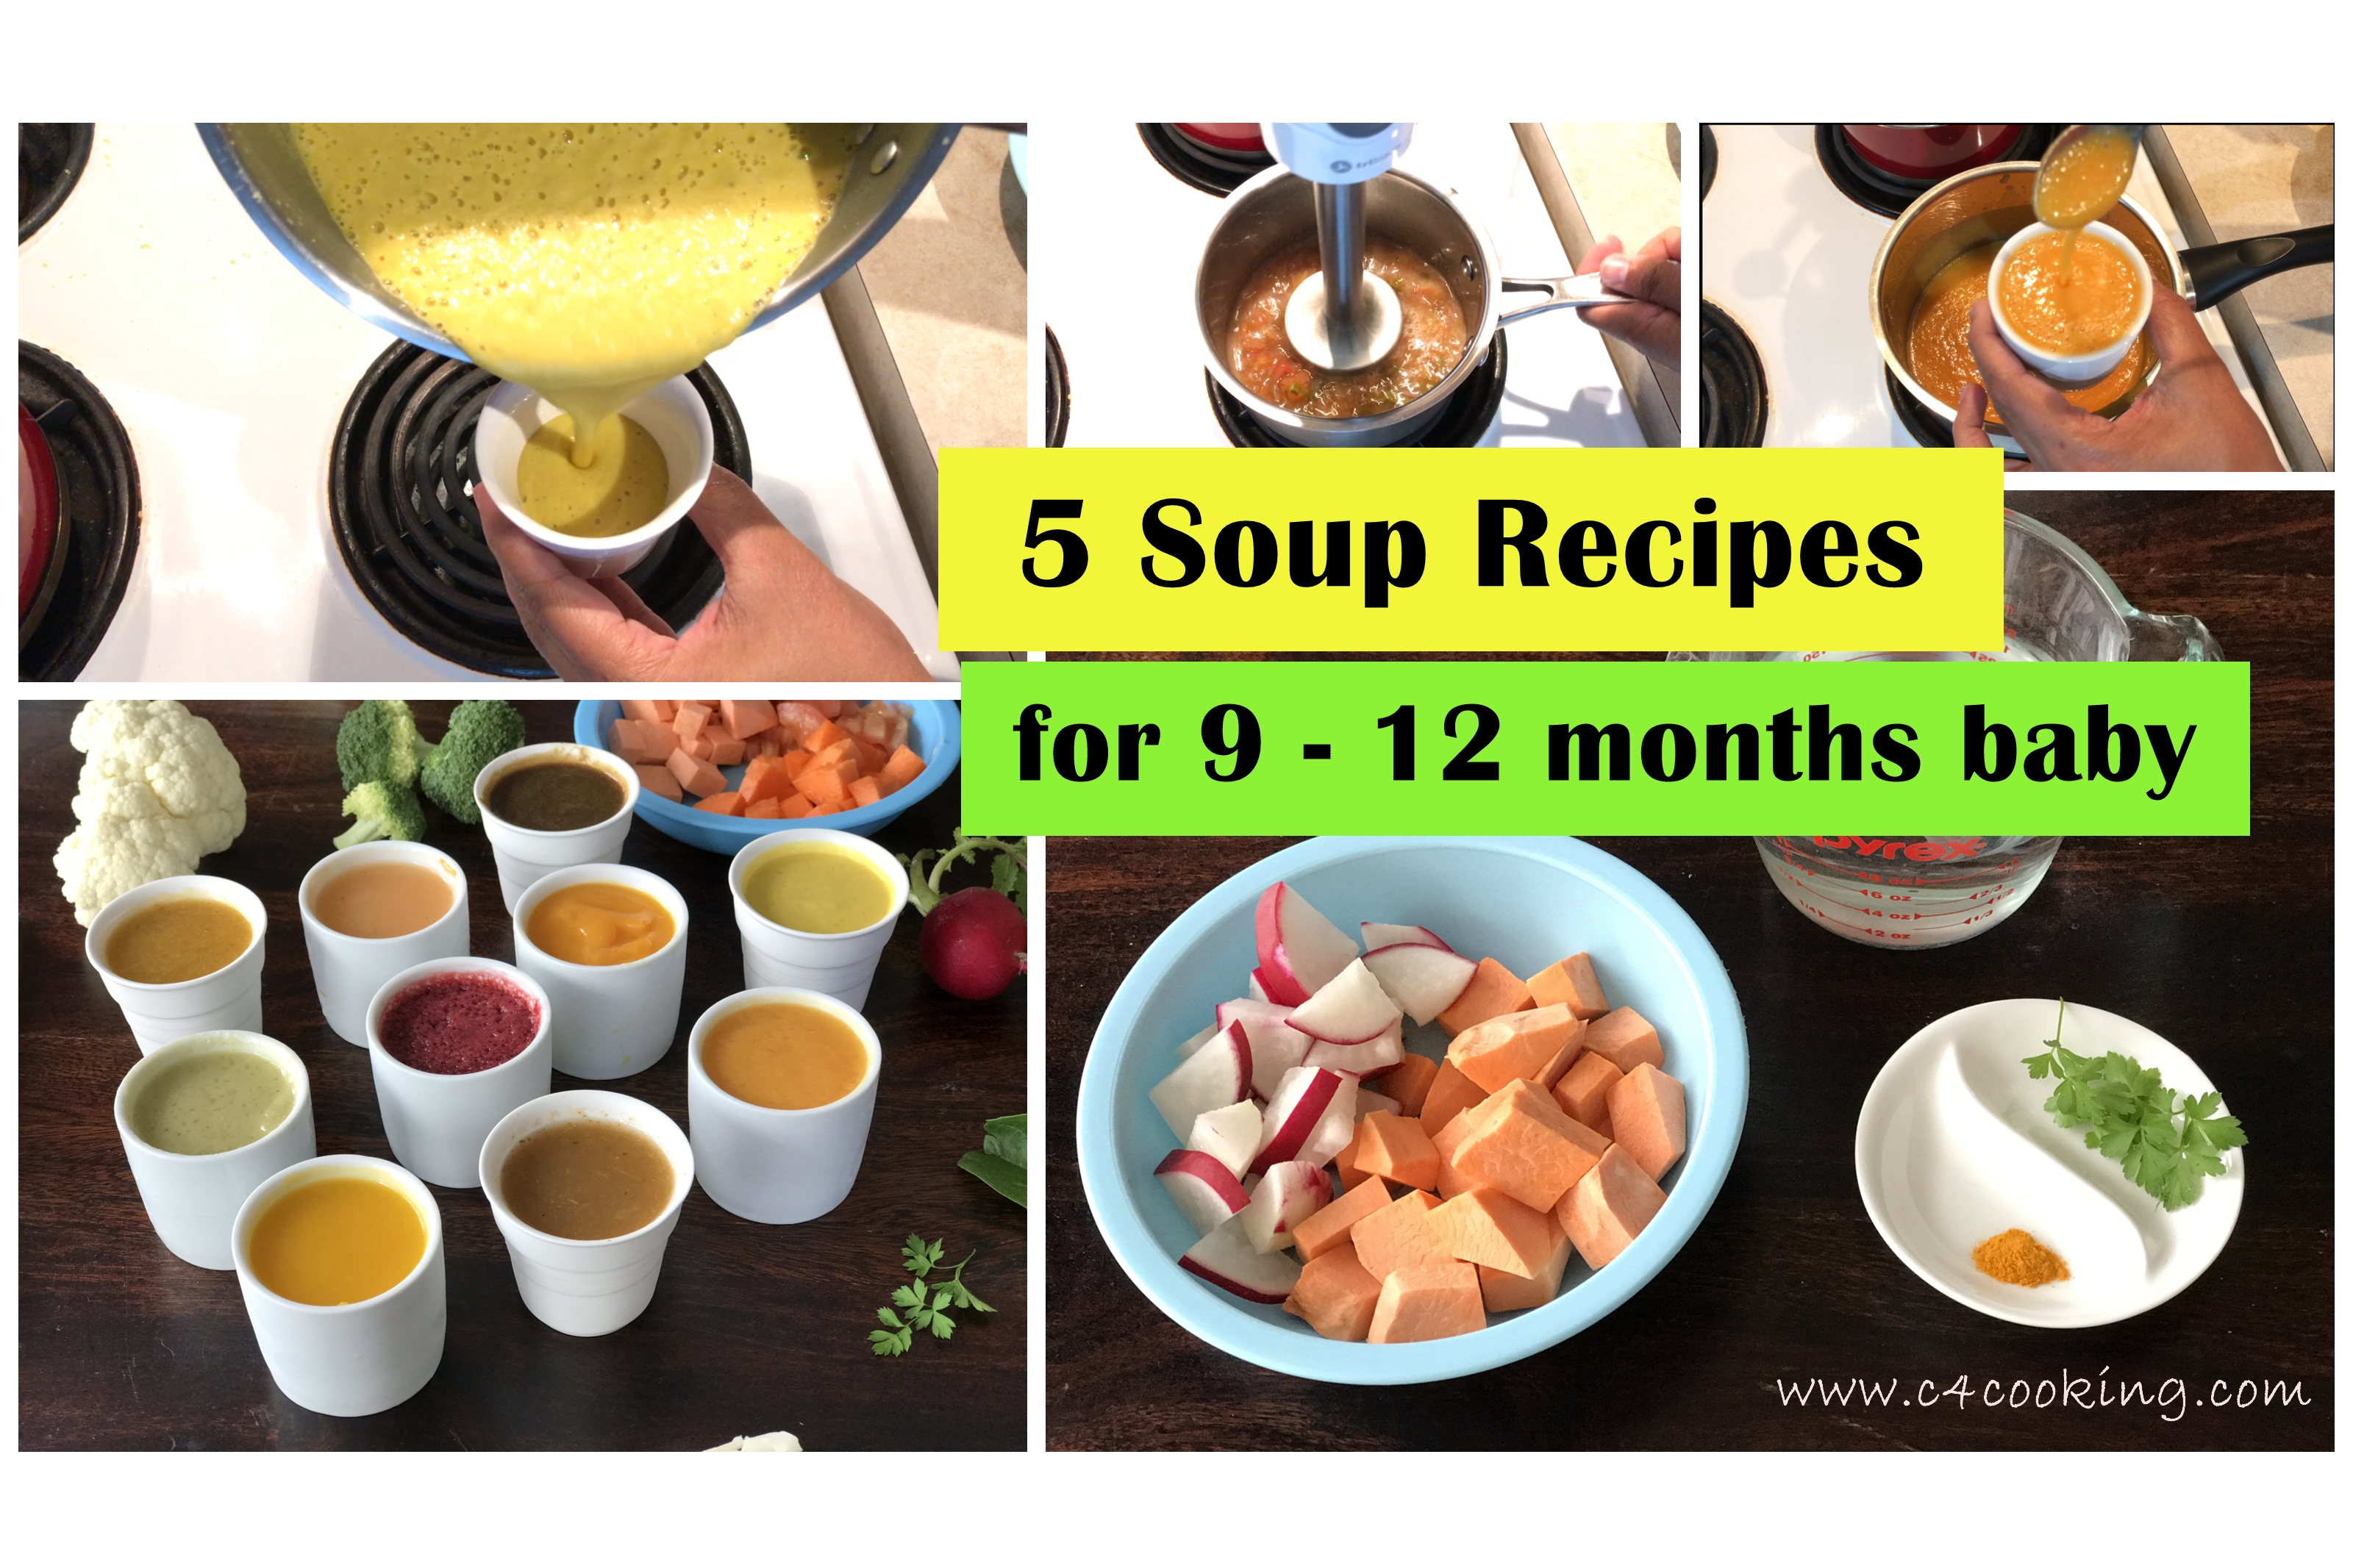 soup recipes for baby, 5 soups for 9-12 months baby, 11months baby food, 10months baby food, 9months baby food, c4cooking babyfood recipes